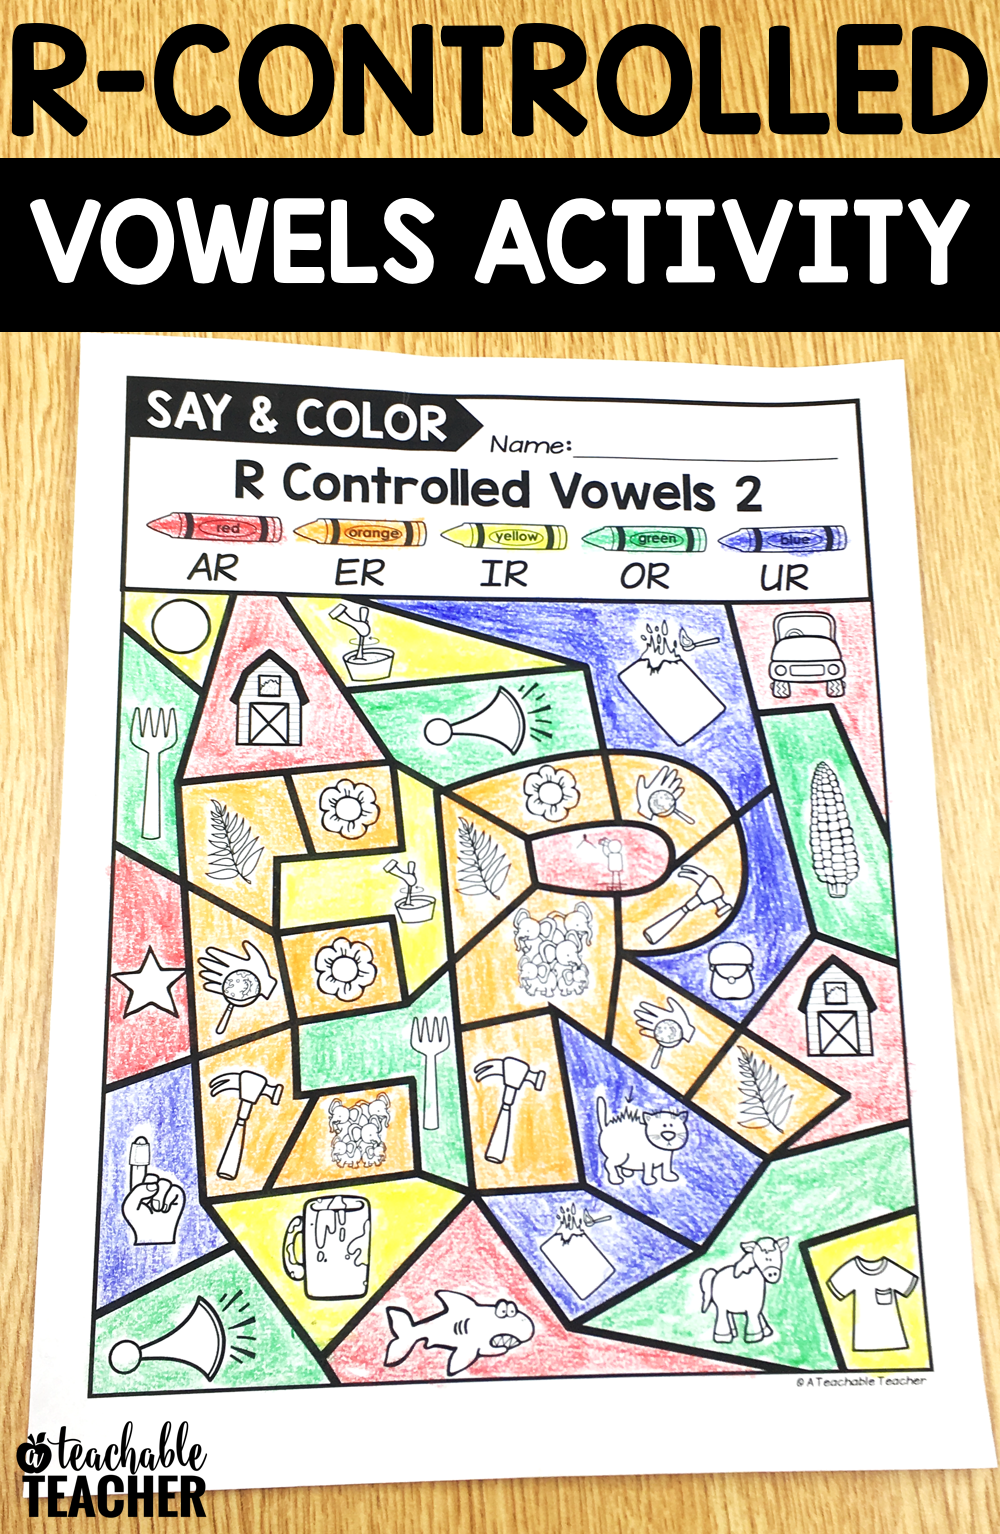 R-controlled vowels worksheets. Say and Color r-controlled vowels  printables incorpora…   Vowel activities [ 1534 x 1000 Pixel ]